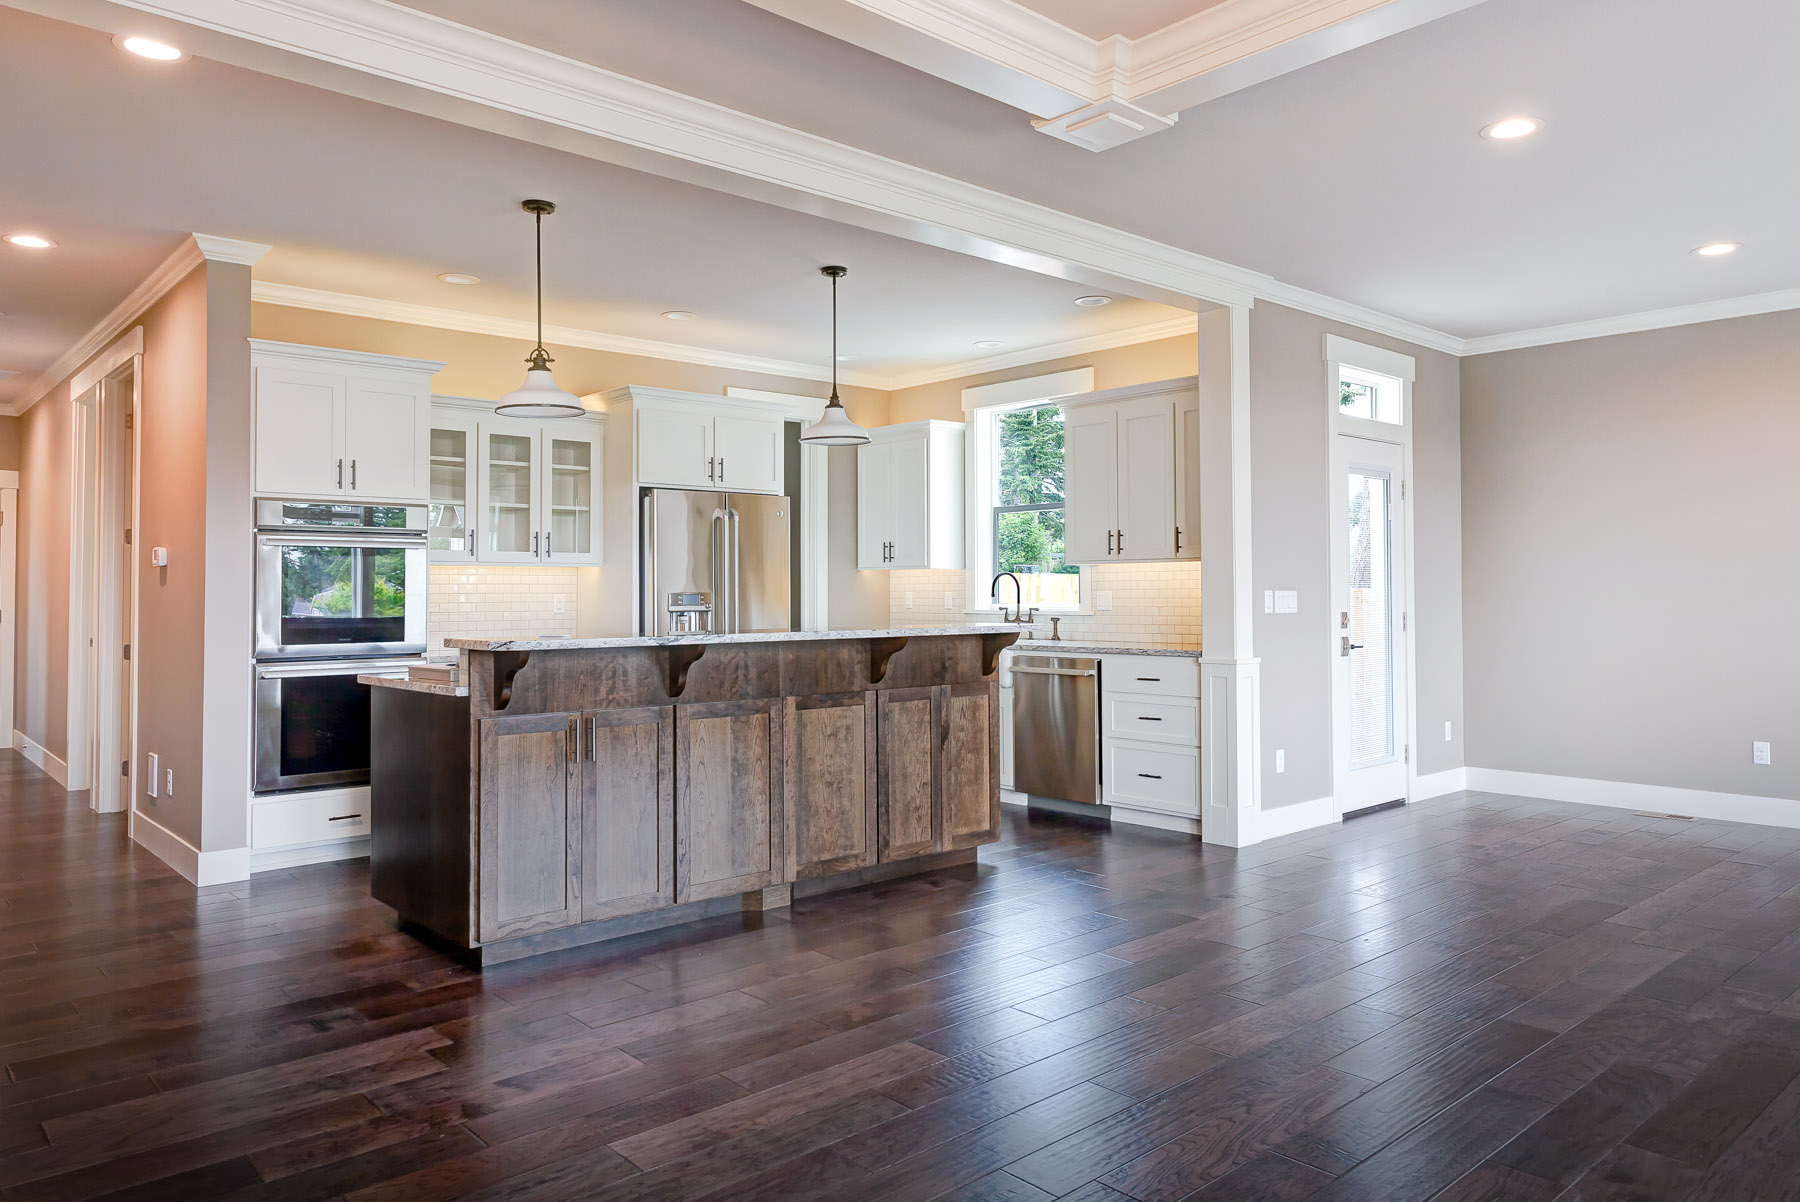 Very upscale kitchen with an island and crown moulding detail